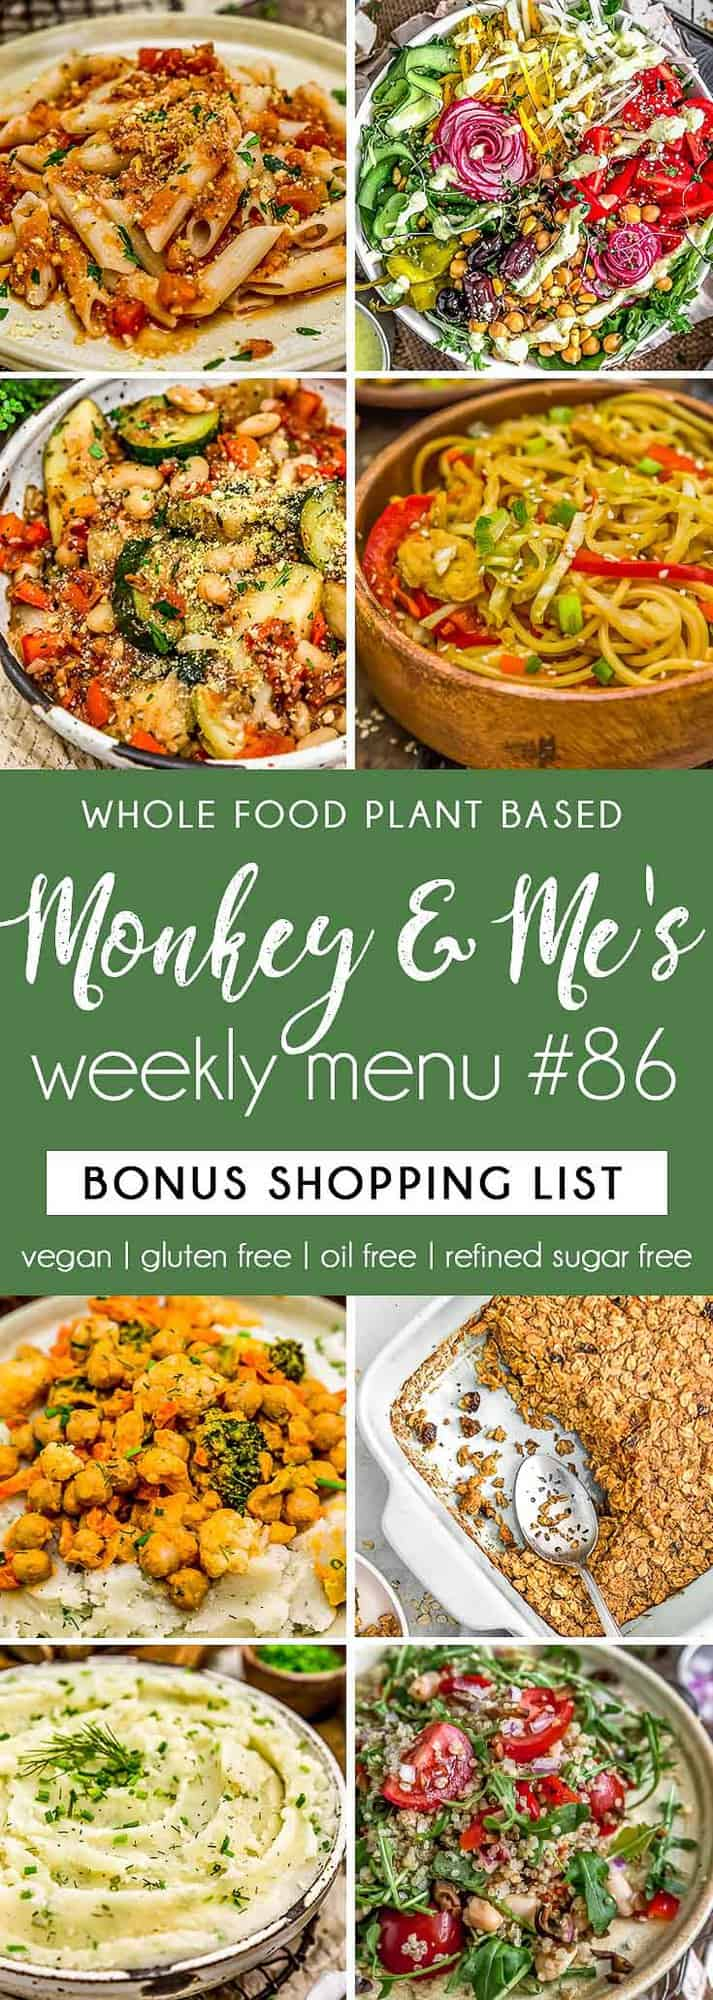 Monkey and Me's Menu 86 featuring 8 recipes